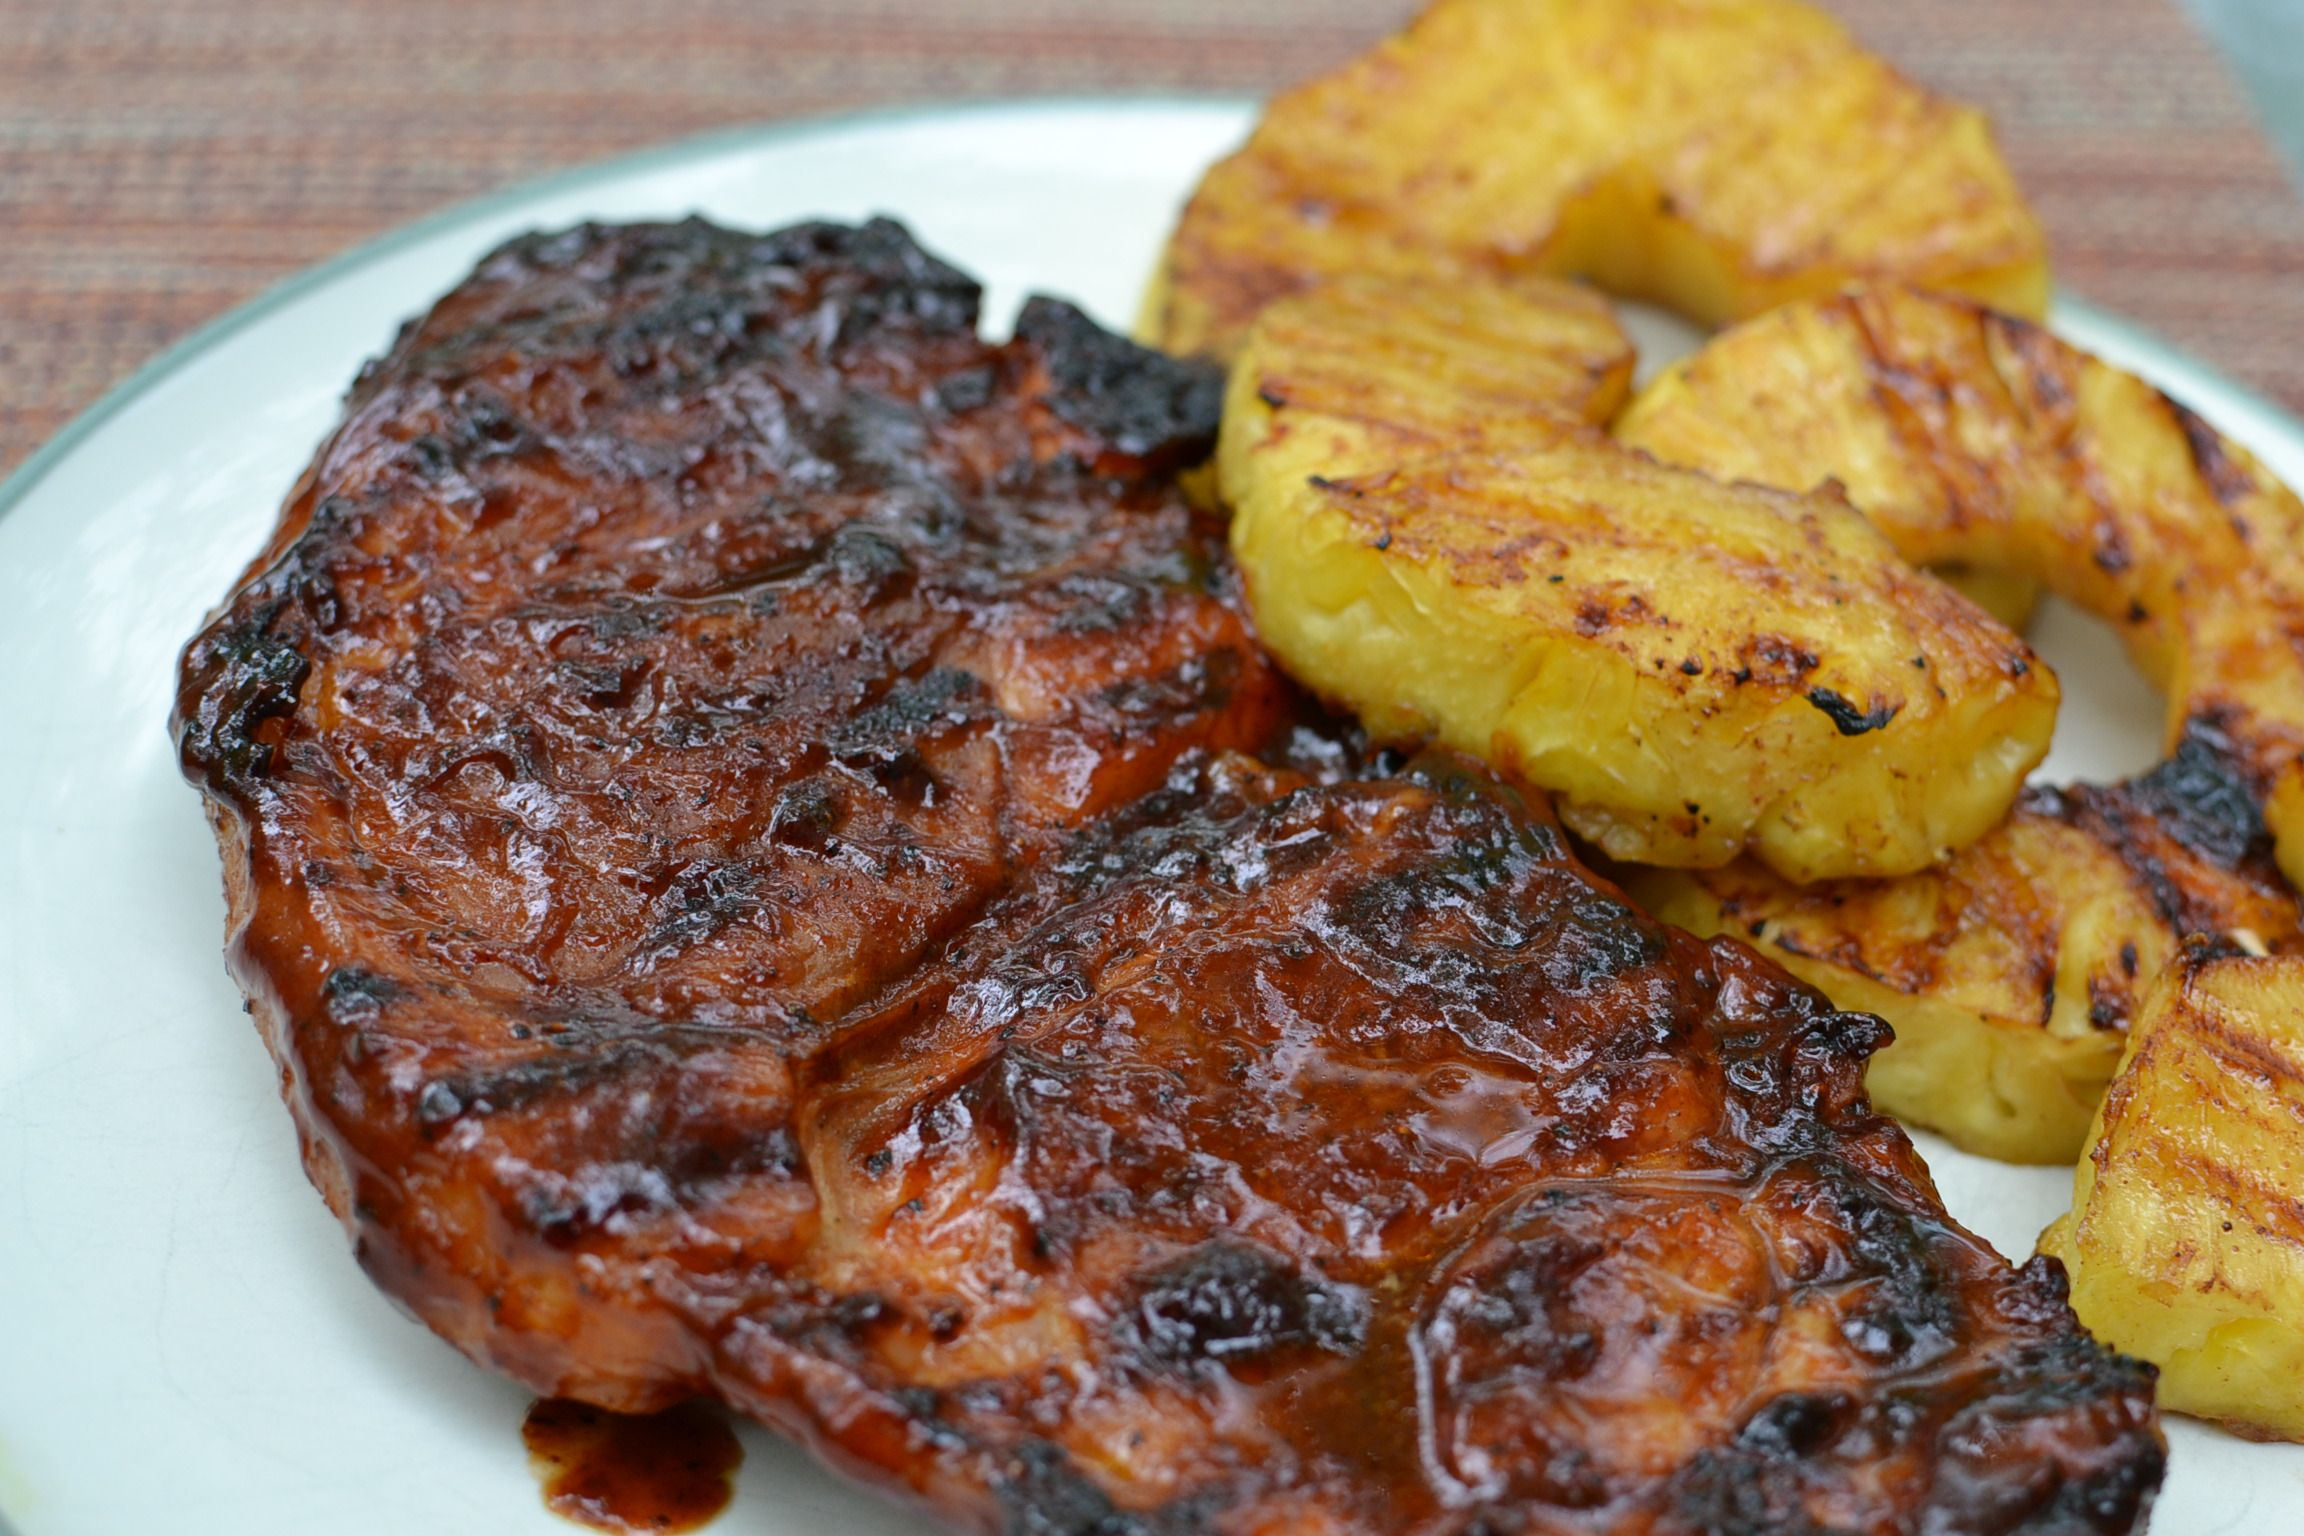 Grilled pork steaks - juicy and full of flavor!  Not your typical overcooked flavors.  Plus the recipe is written in a funny way.... #grilledporksteaks